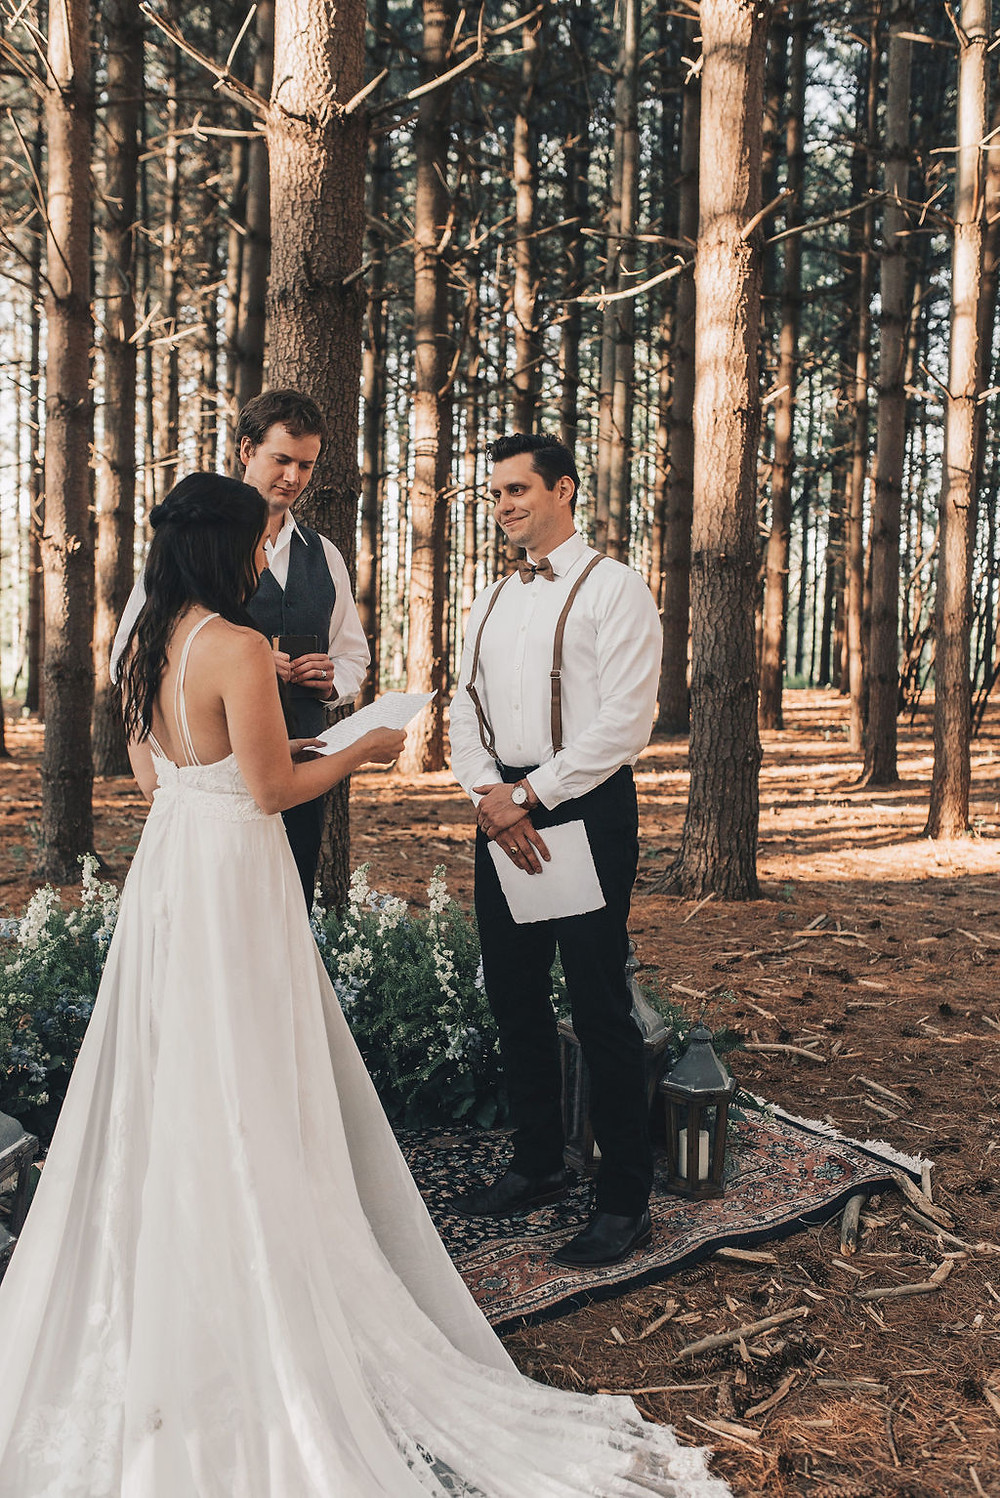 Reading vows in their woodsy, tiny elopement wedding ceremony